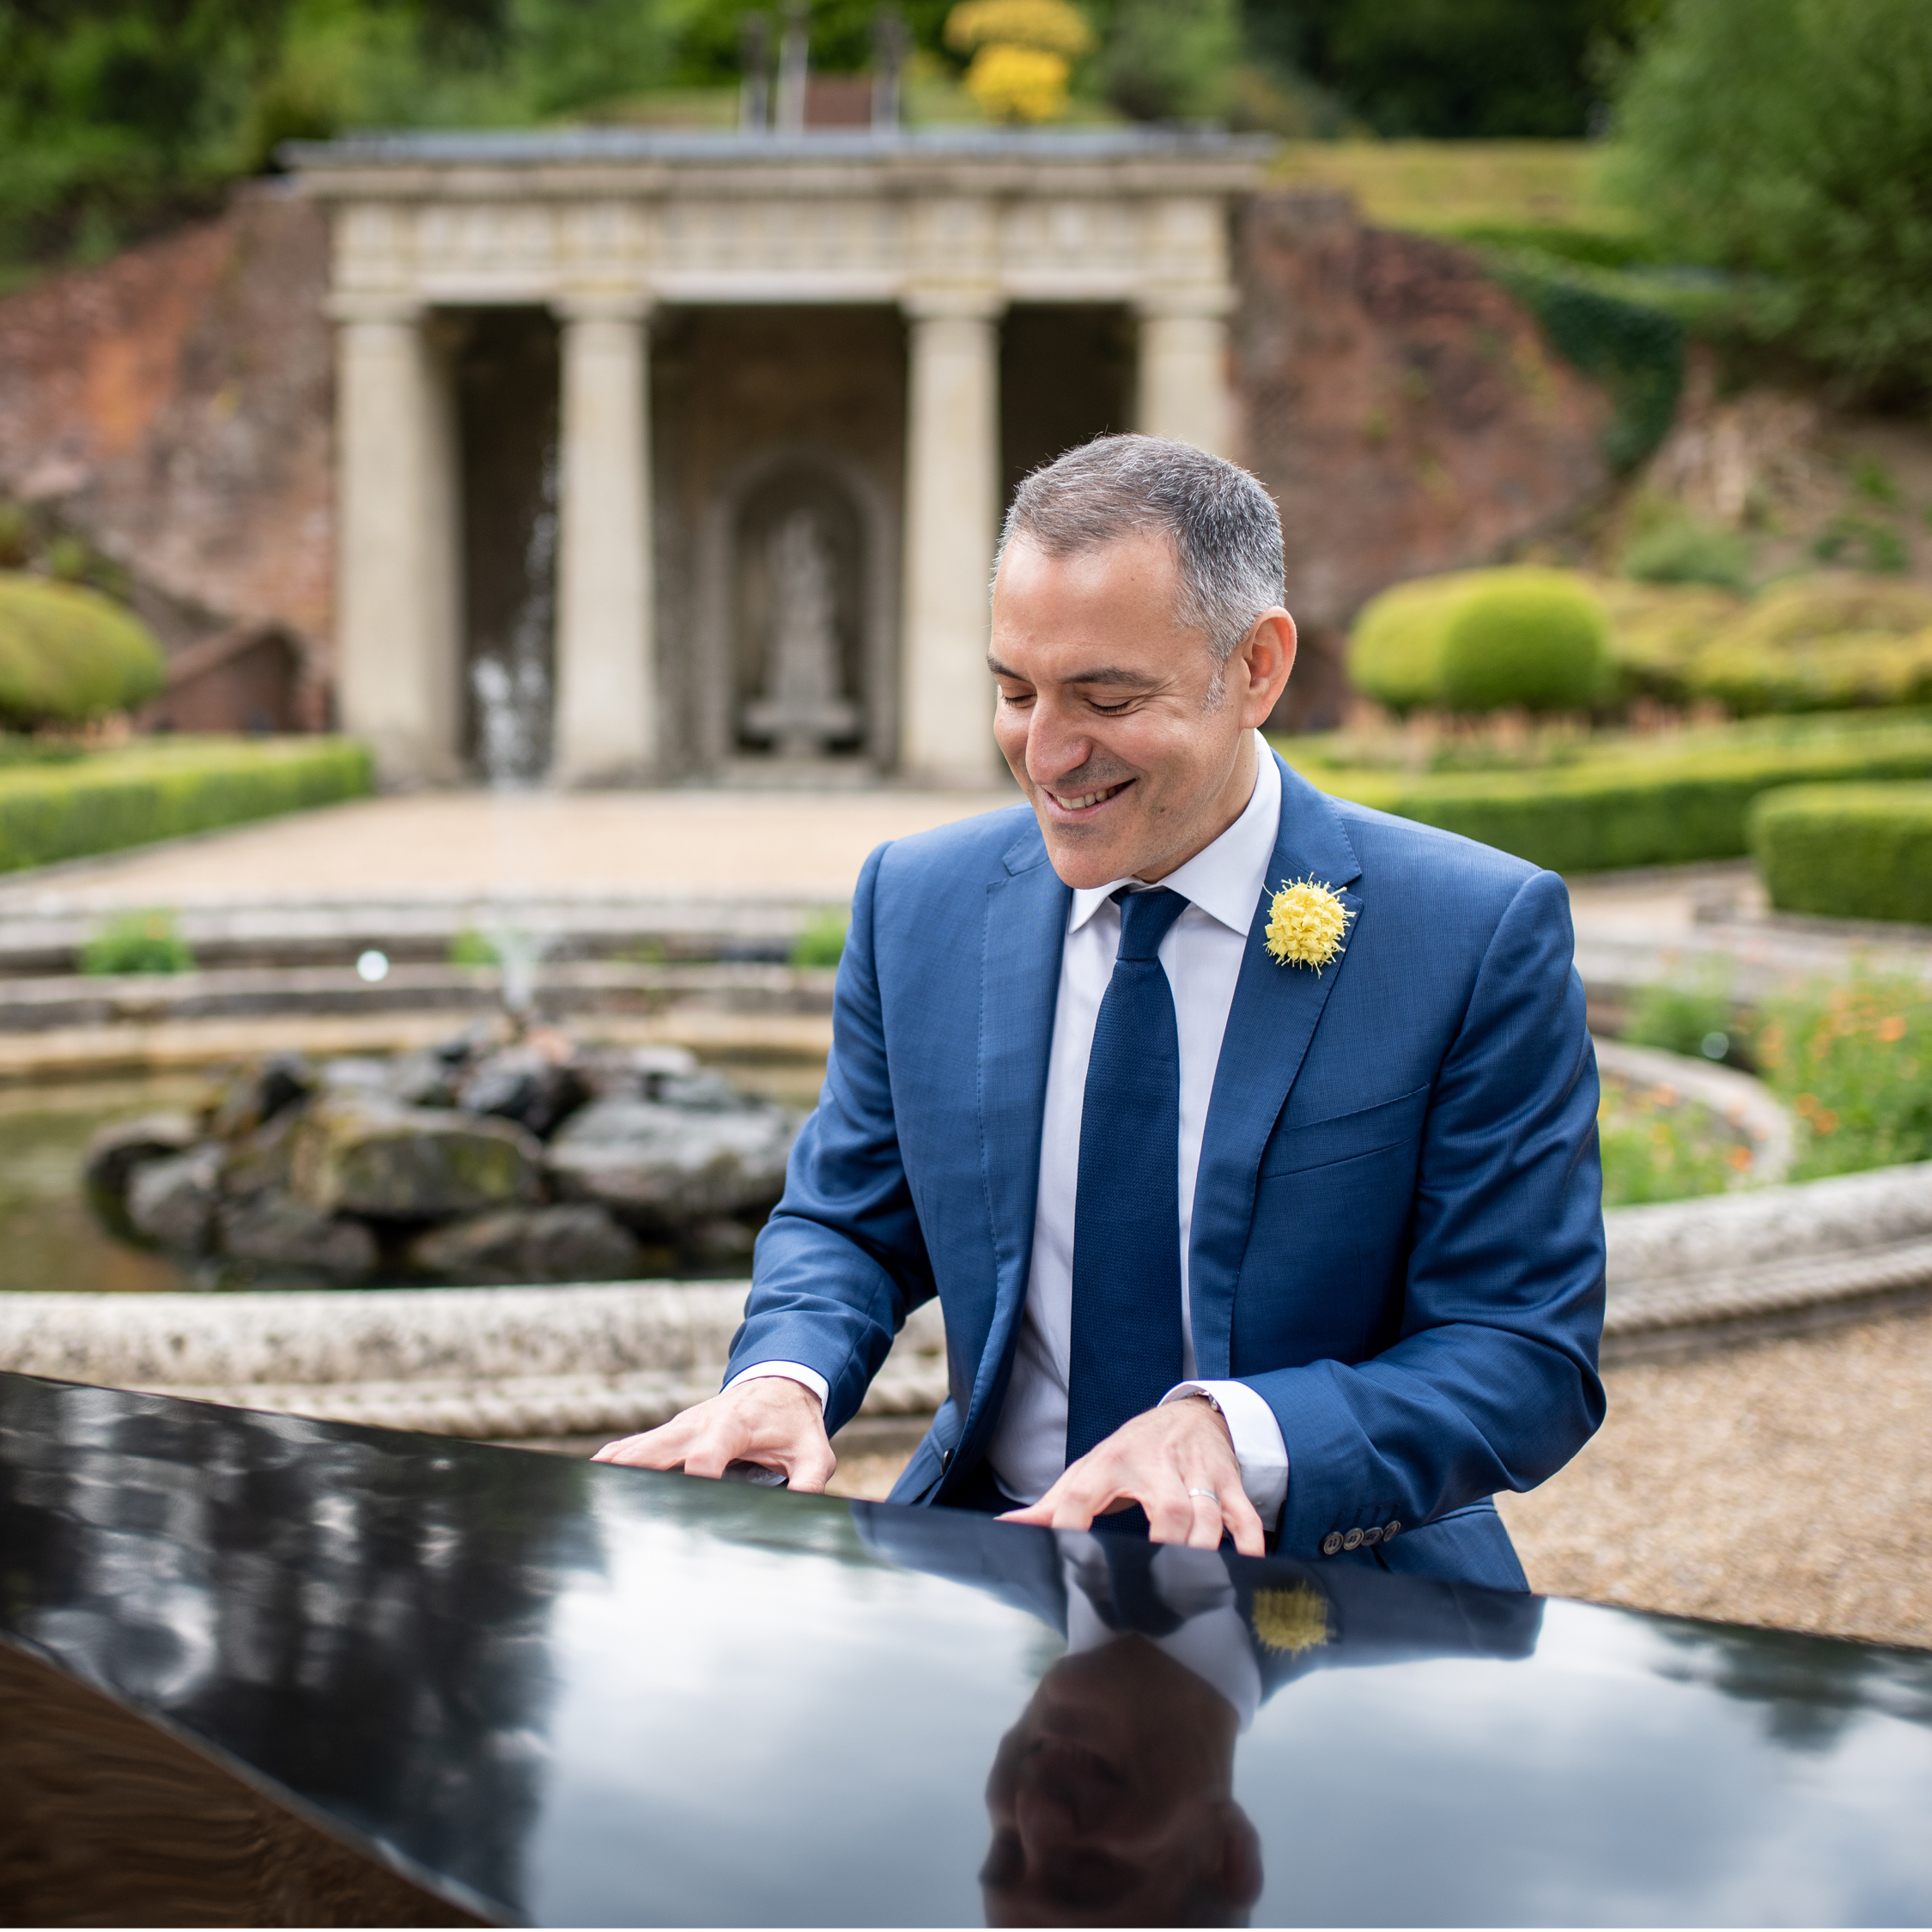 Hayley B Weddings, Wotton House recommended supplier, Surrey pianist